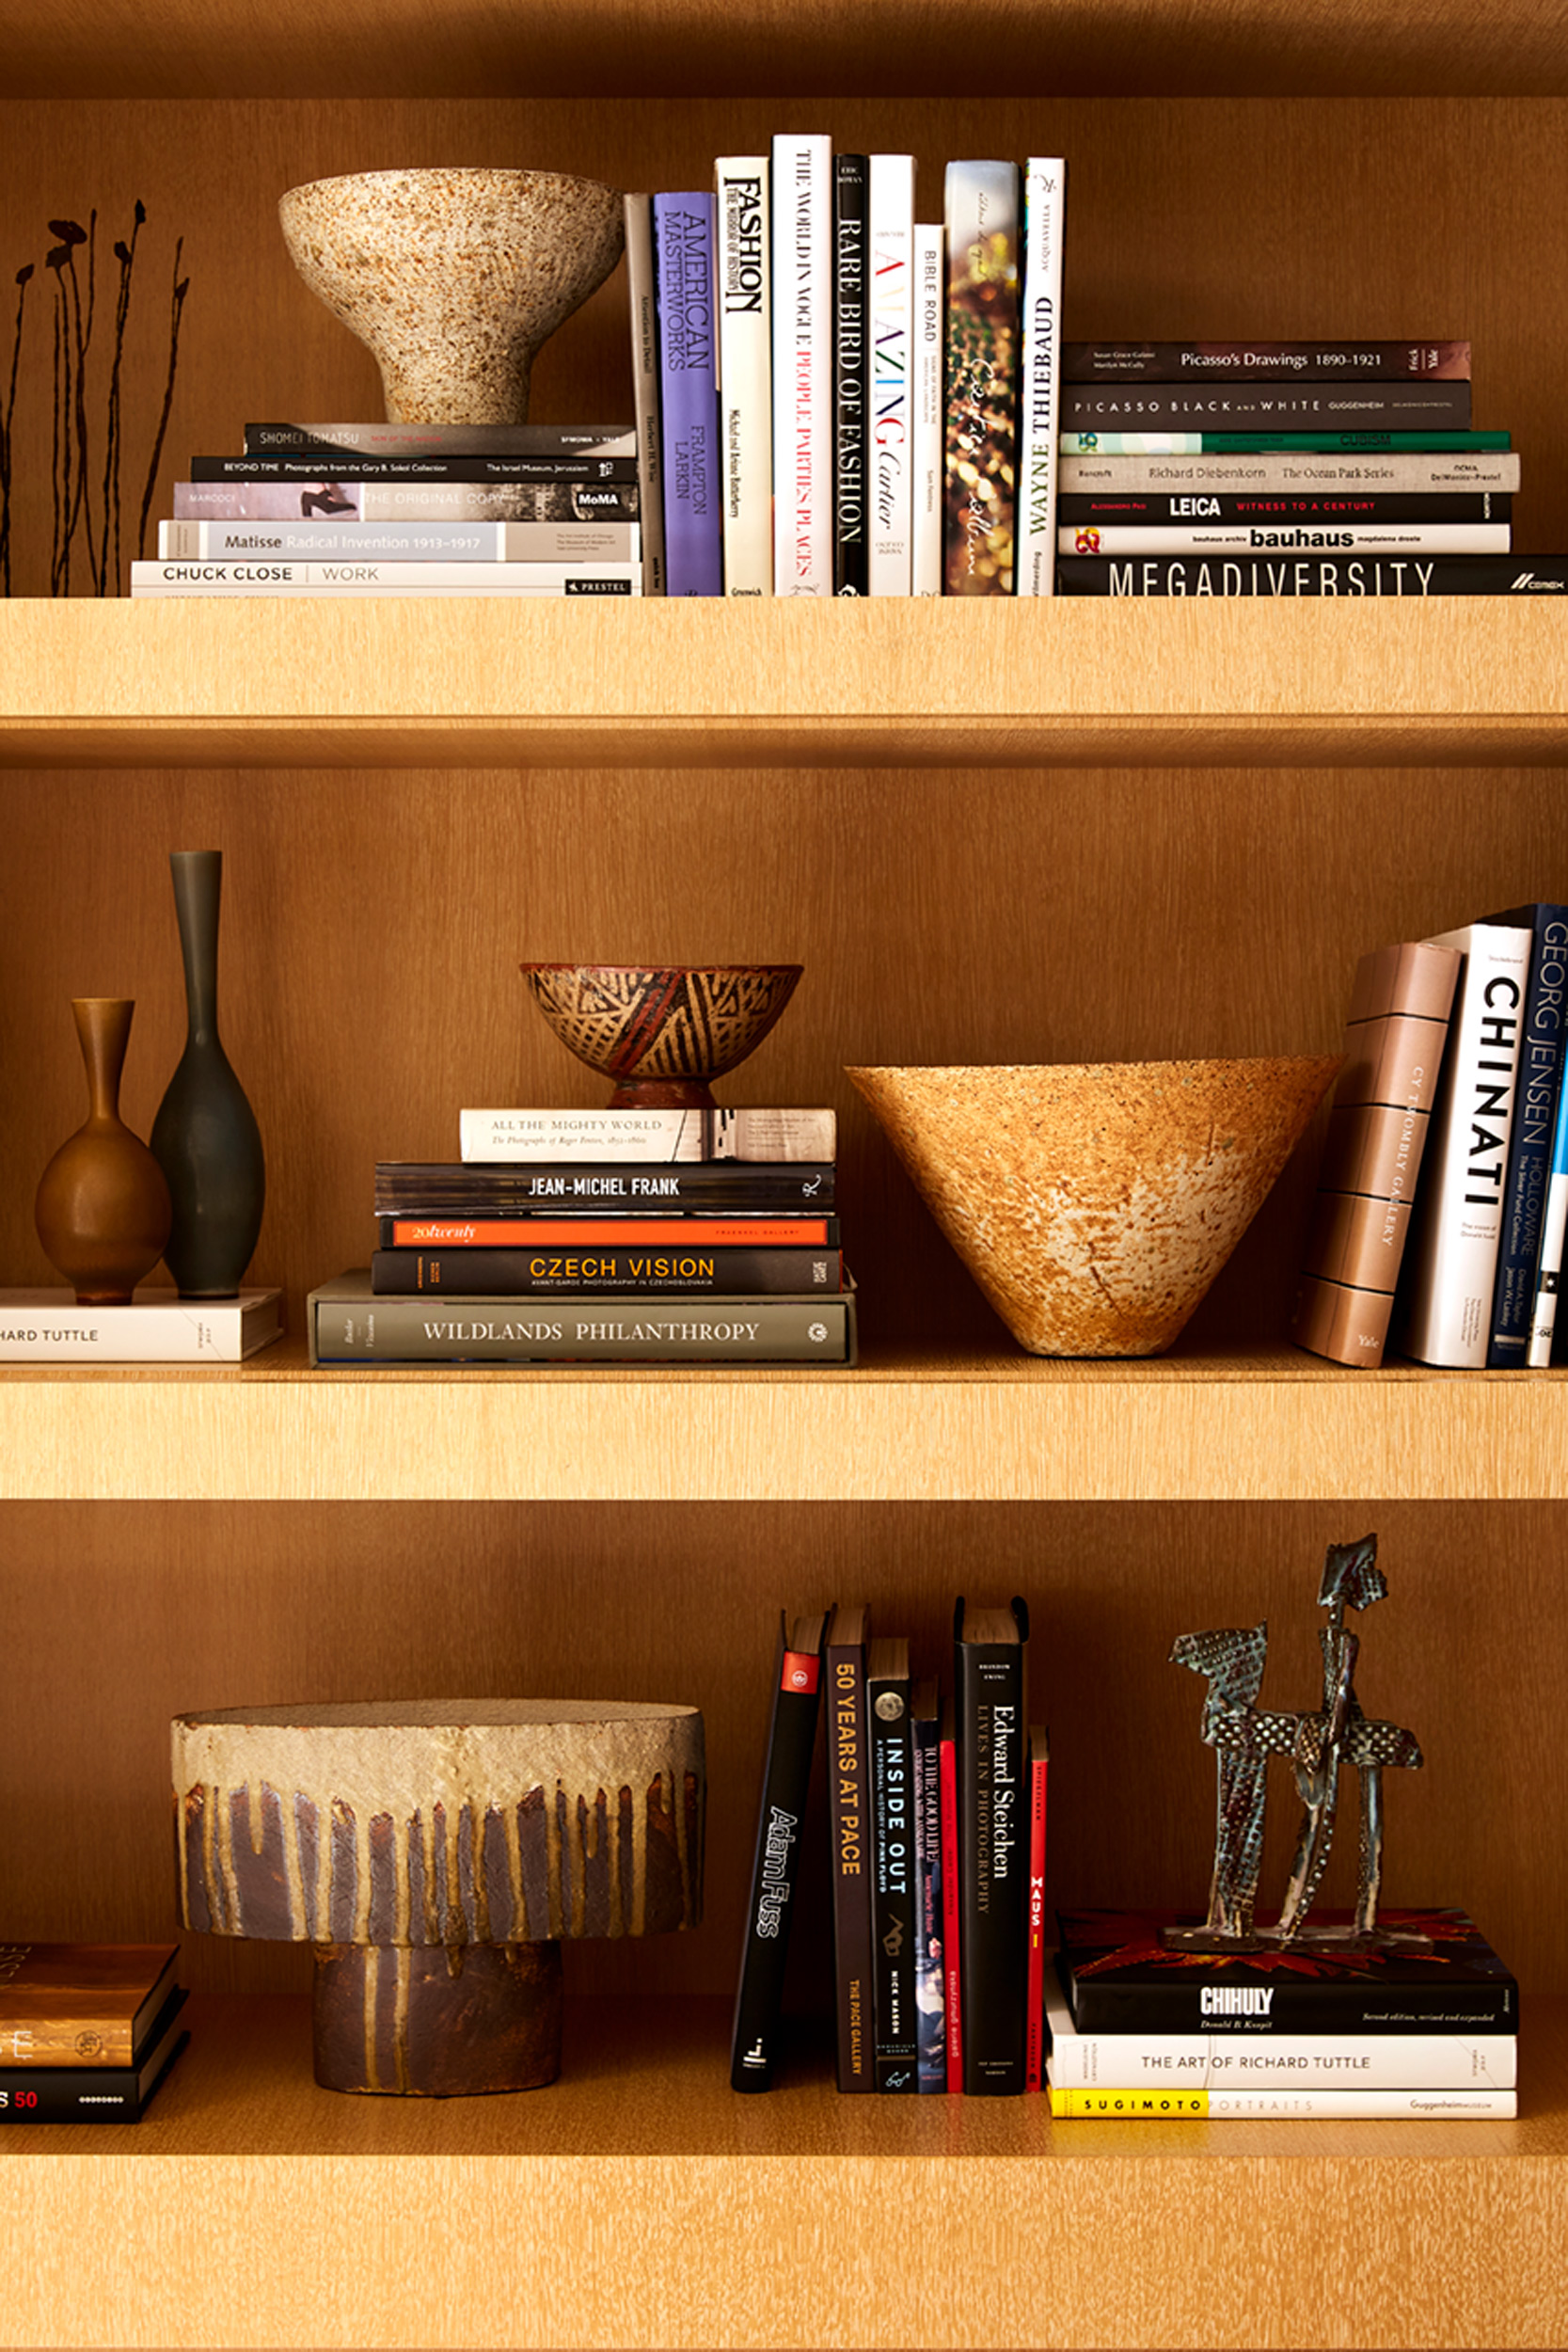 Katie Newburn | San Francisco Bay Area Food and Lifestyle Photographer | Douglas Durkin Design Interior Shelves